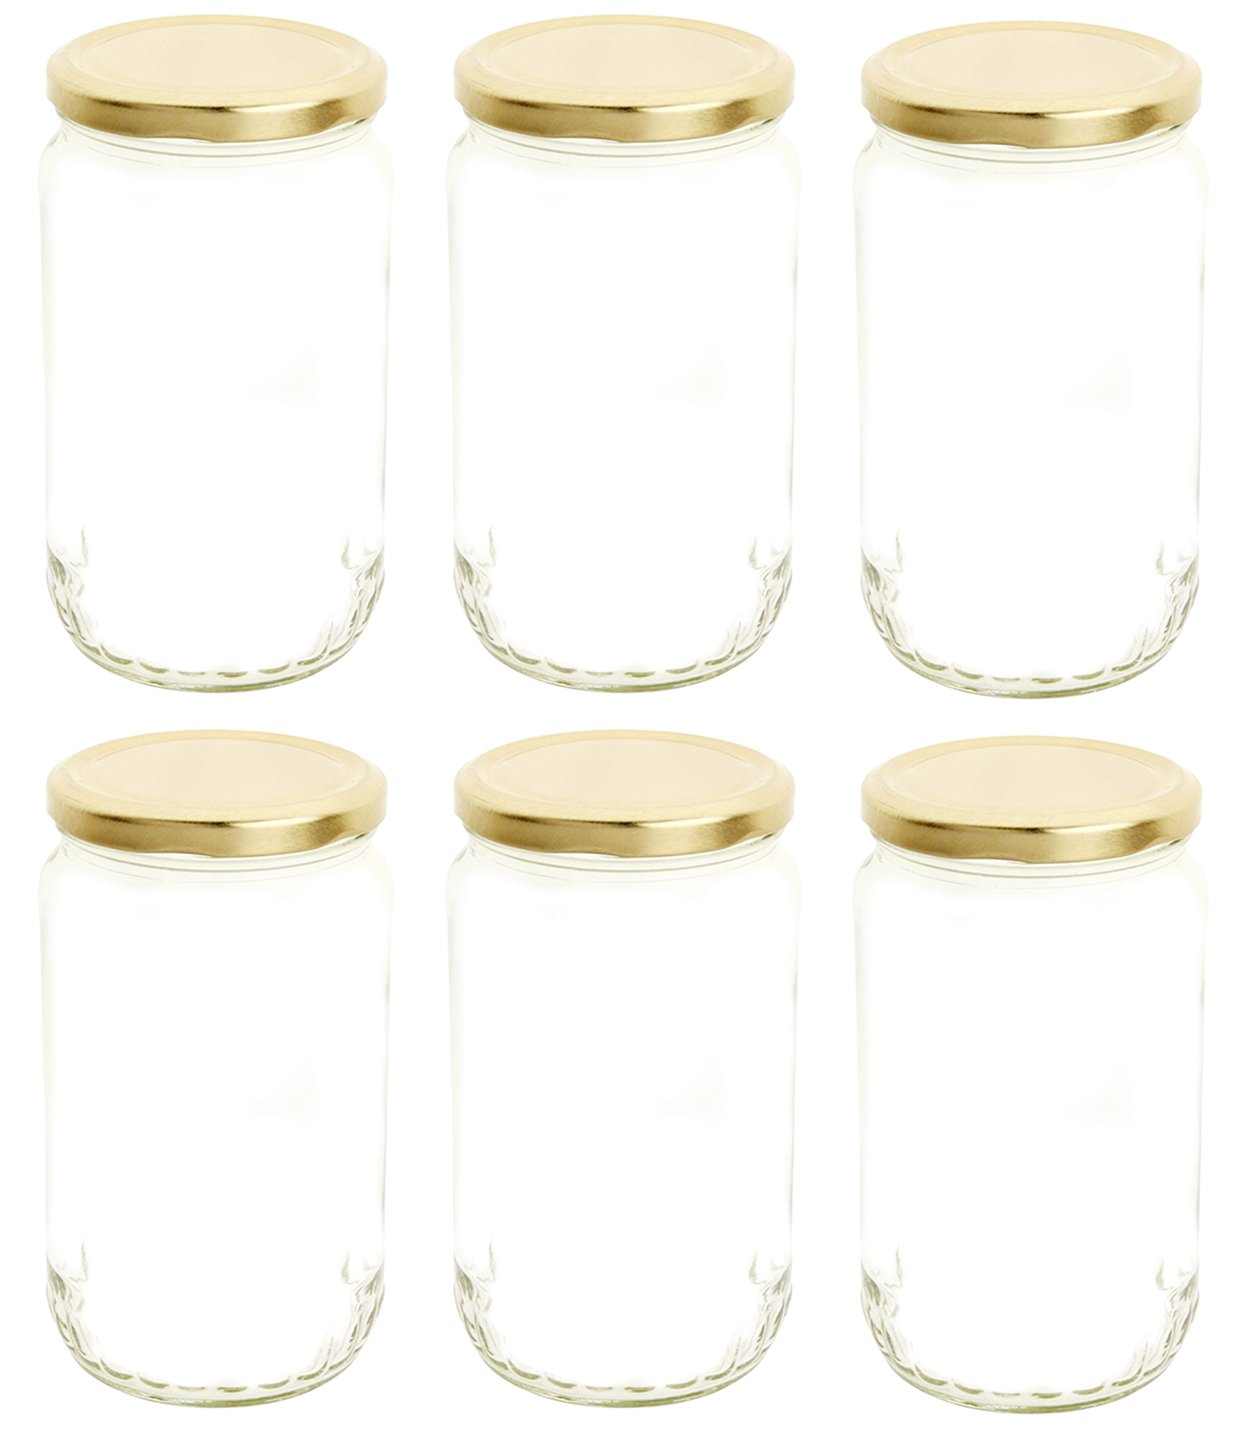 Favola 800 Gram (Gm) Multi Purpose Lead Free Round Glass Jar and Container with Rust Proof Air Tight Lid - (Pack of 6)